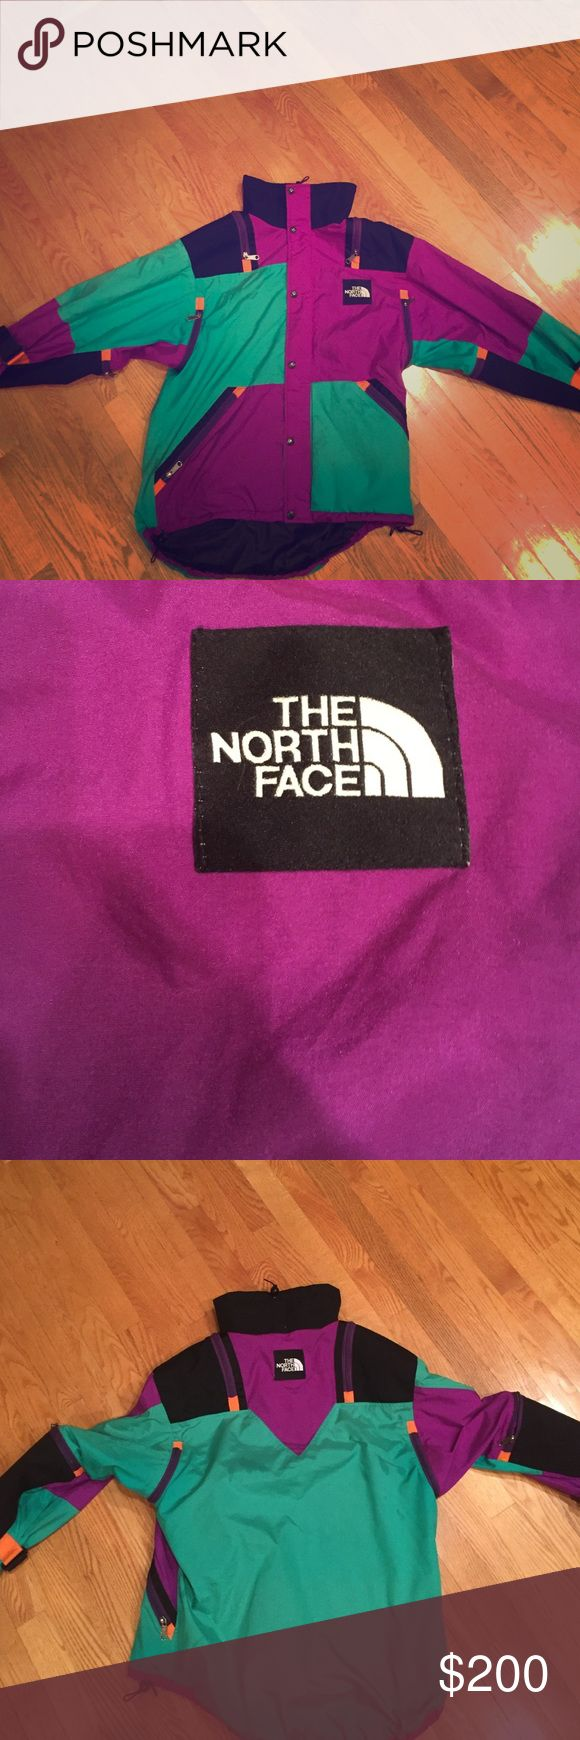 Vintage north face Purple and green with orange hits The North Face Jackets & Coats Ski & Snowboard